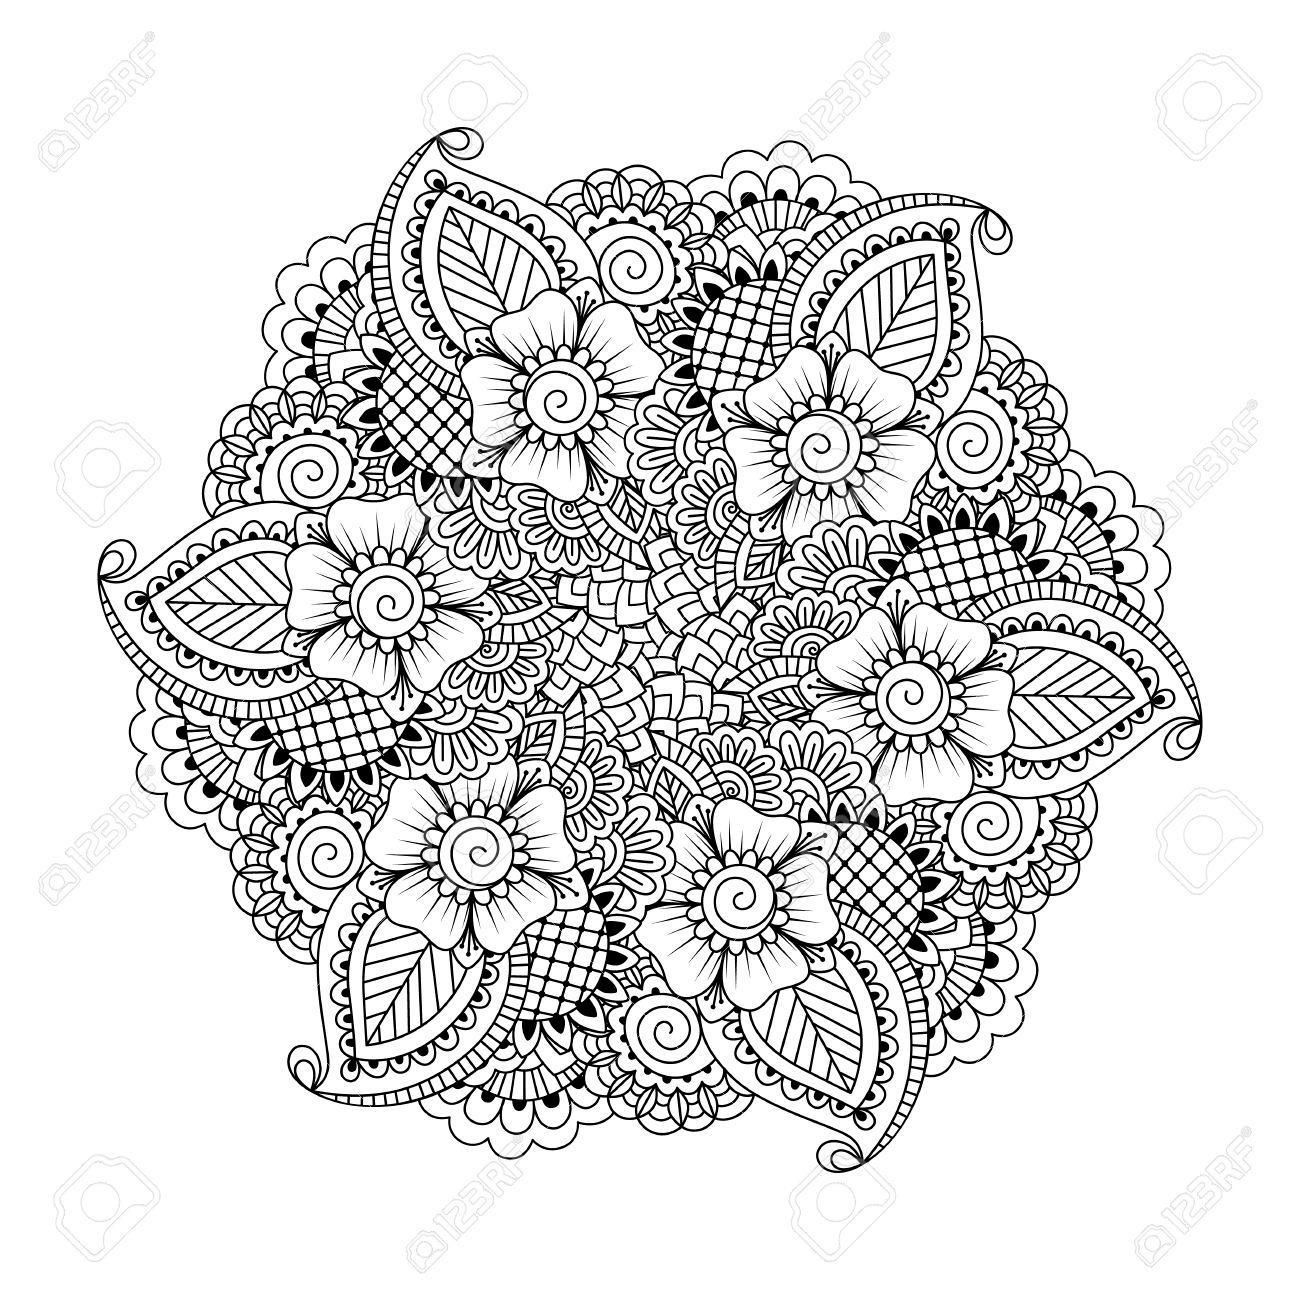 These Printable Abstract Coloring Pages Relieve Stress And Help You Meditate Davlin Publishing